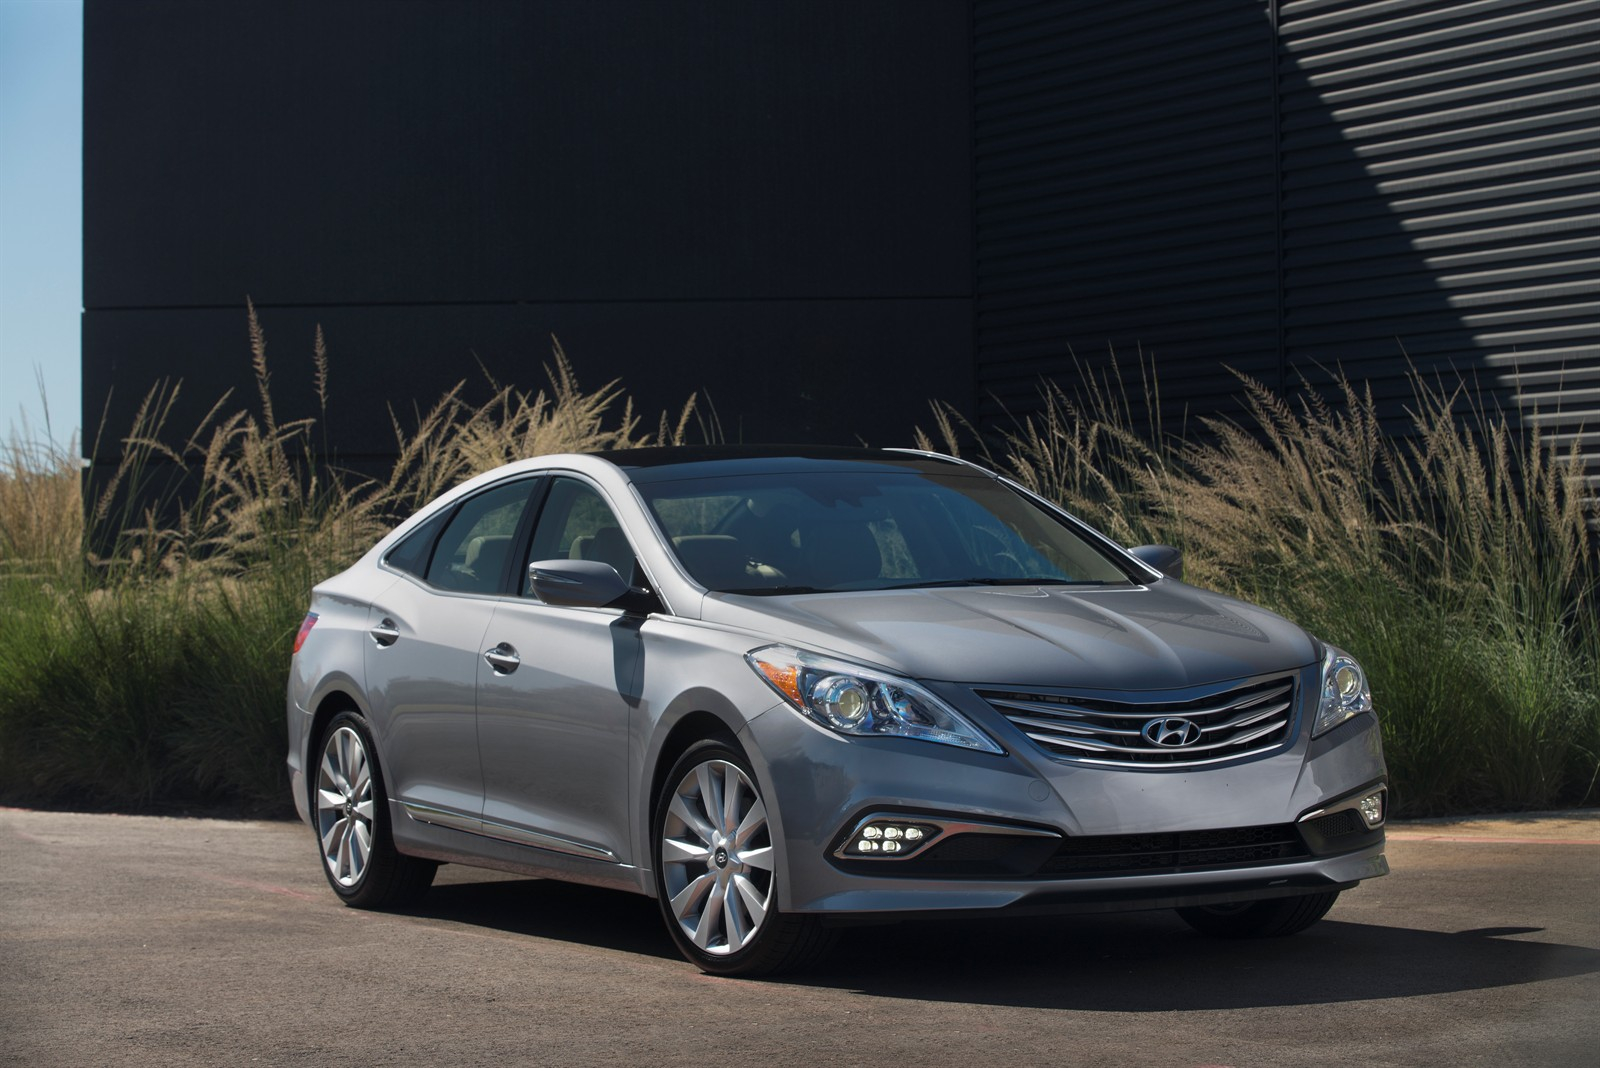 US: Hyundai Launched the Refreshed 2015 Azera